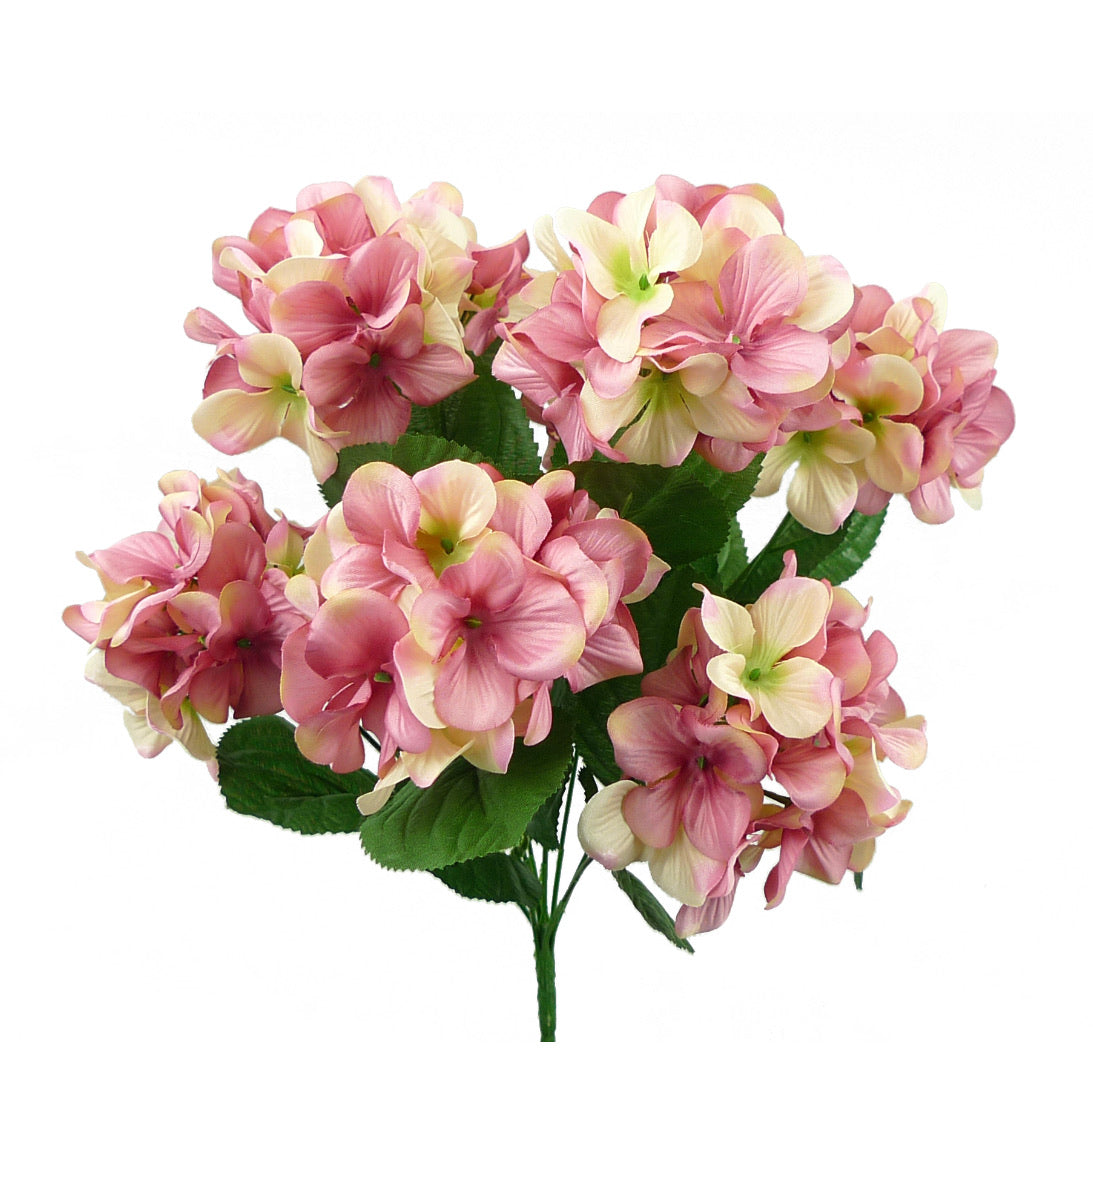 Hydrangea - pink mauve and cream